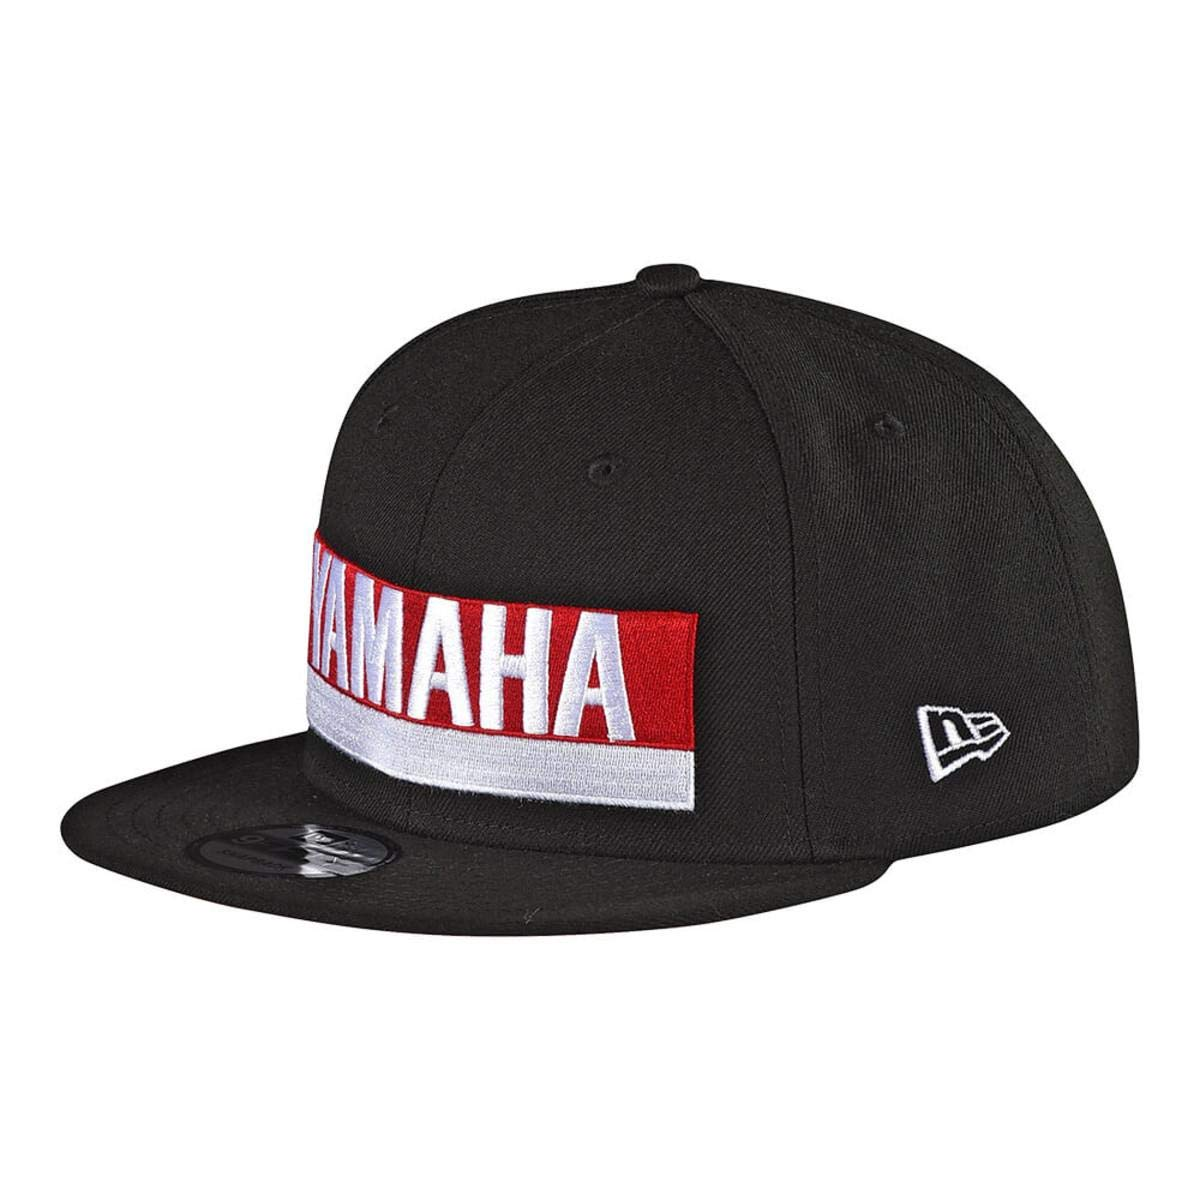 Troy Lee Designs Mens TLD Yamaha Factory Snapback Adjustable Hats